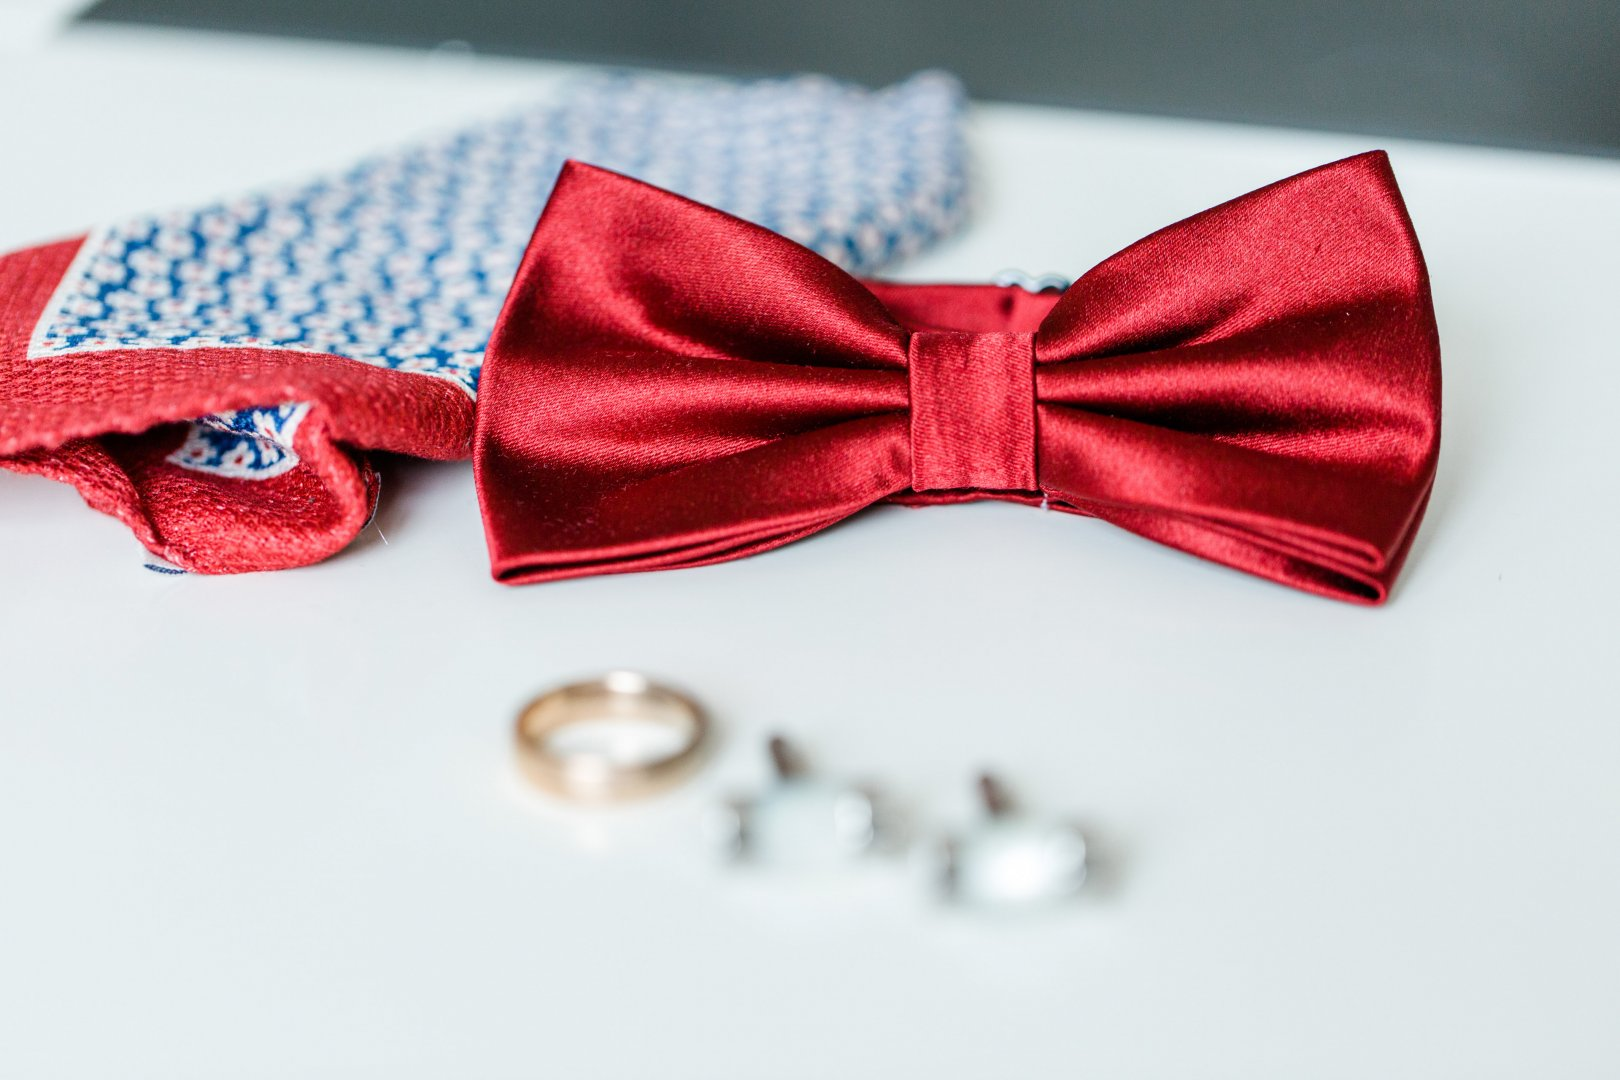 Bow tie Red Tie Fashion accessory Pink Ribbon Knot Hair tie Hair accessory